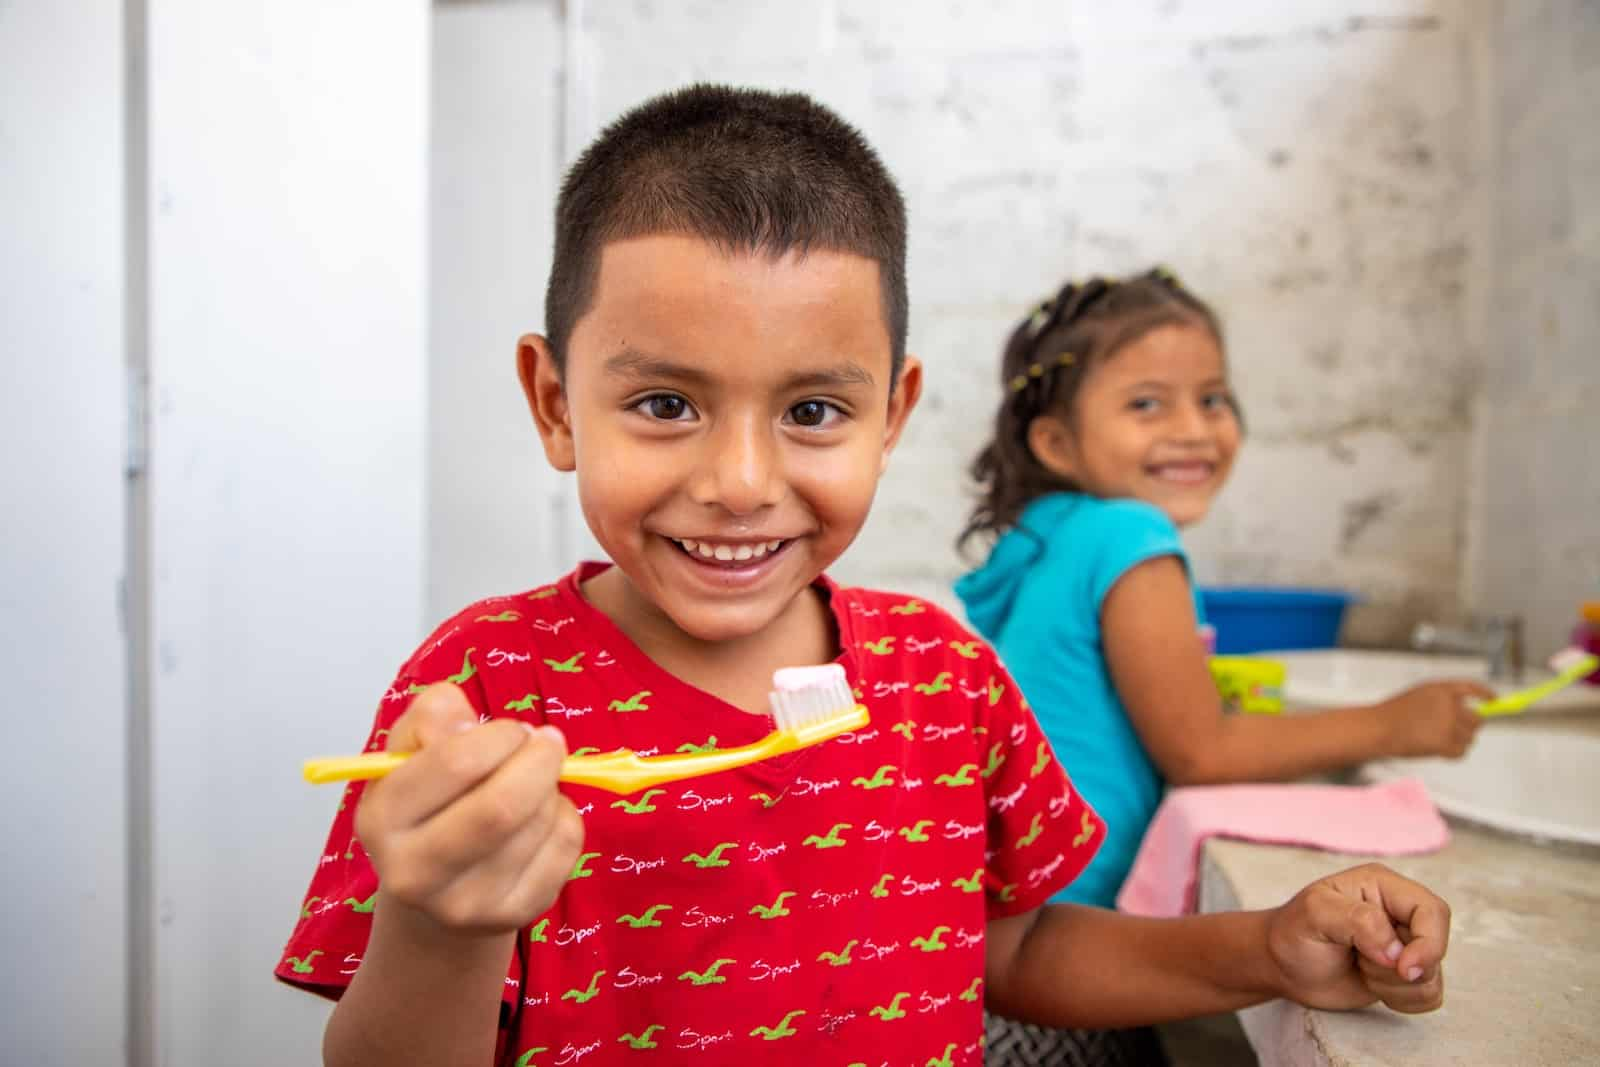 A boy in a red shirt holds up a toothbrush and smiles.